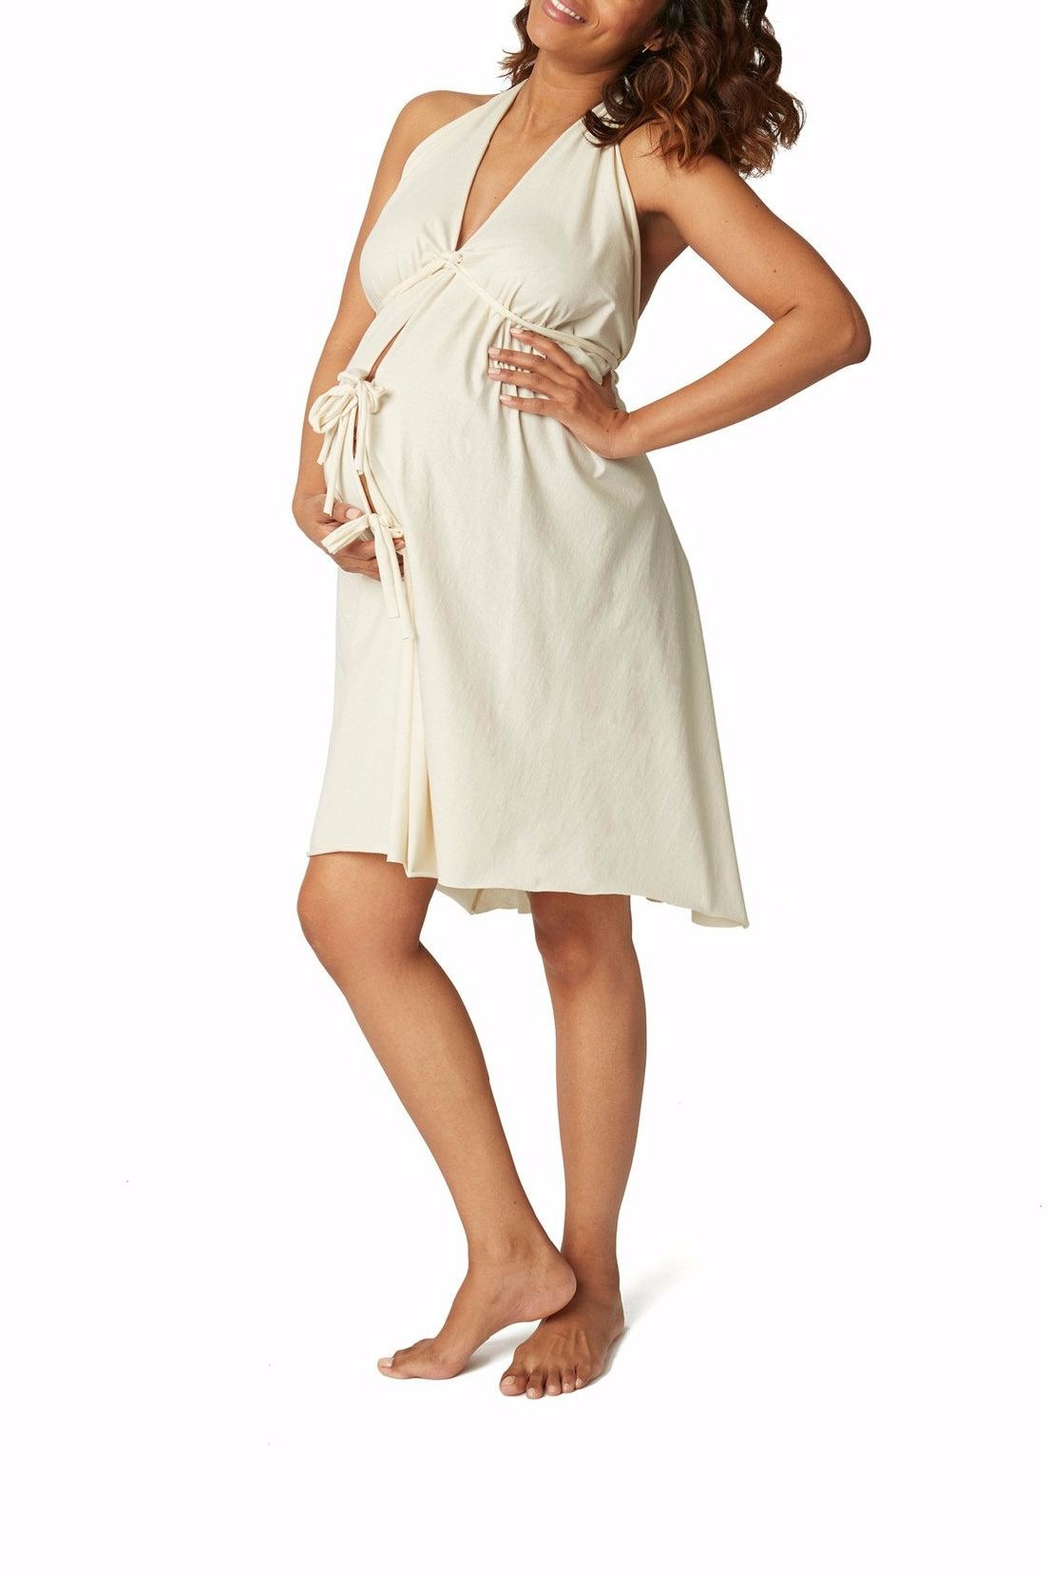 Pretty Pushers Unbleached Labor Gown - Main Image